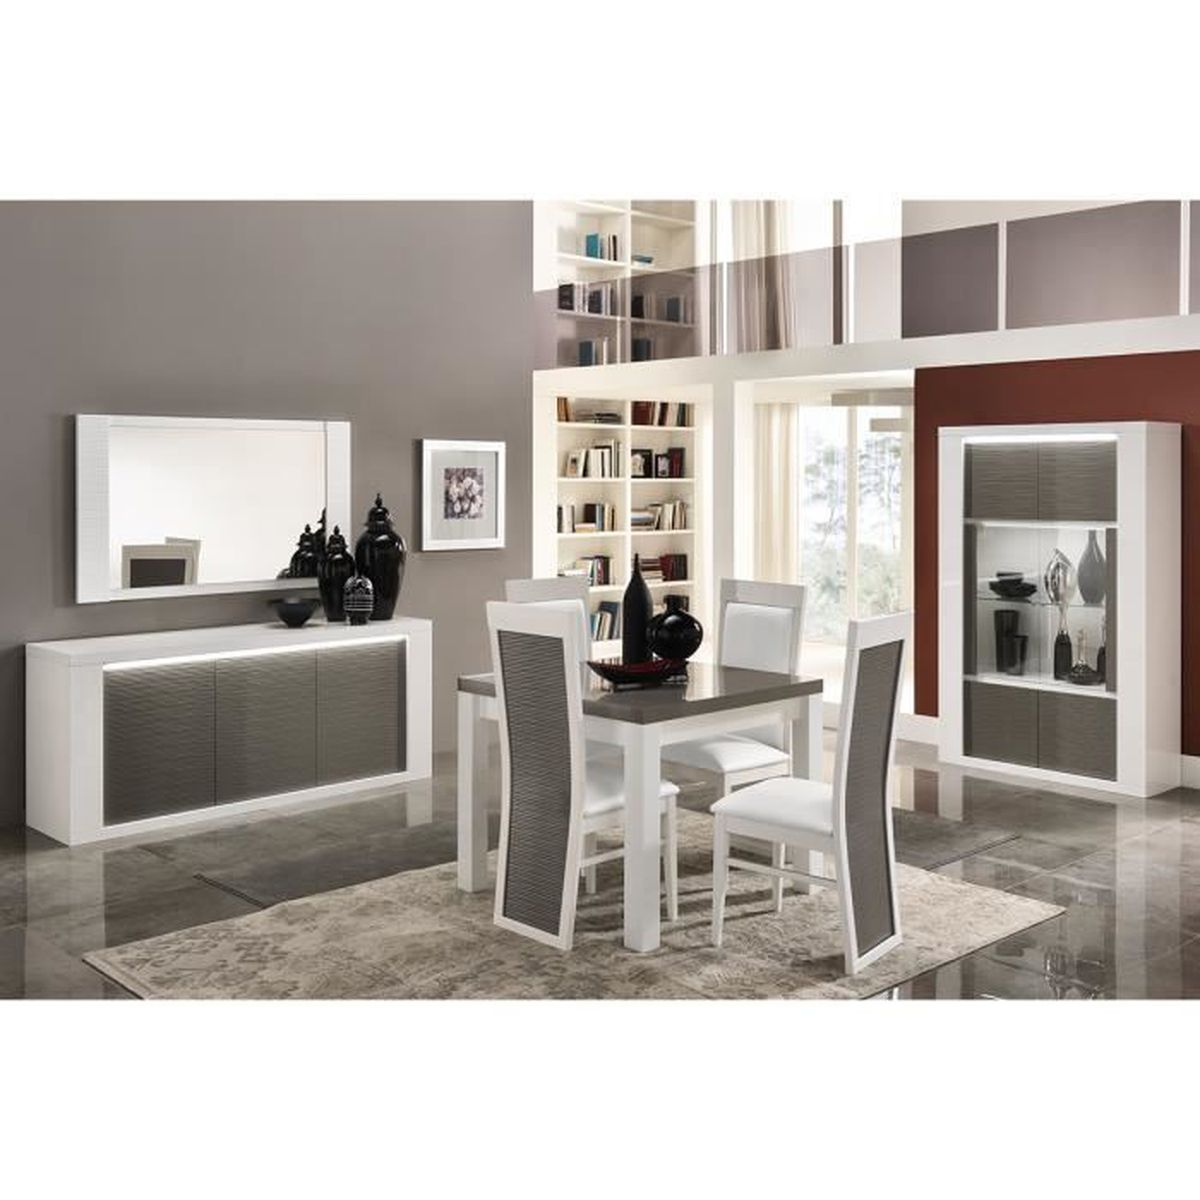 salle manger avec table carr e coloris blanc et gris laqu brillant blanc et gris achat. Black Bedroom Furniture Sets. Home Design Ideas